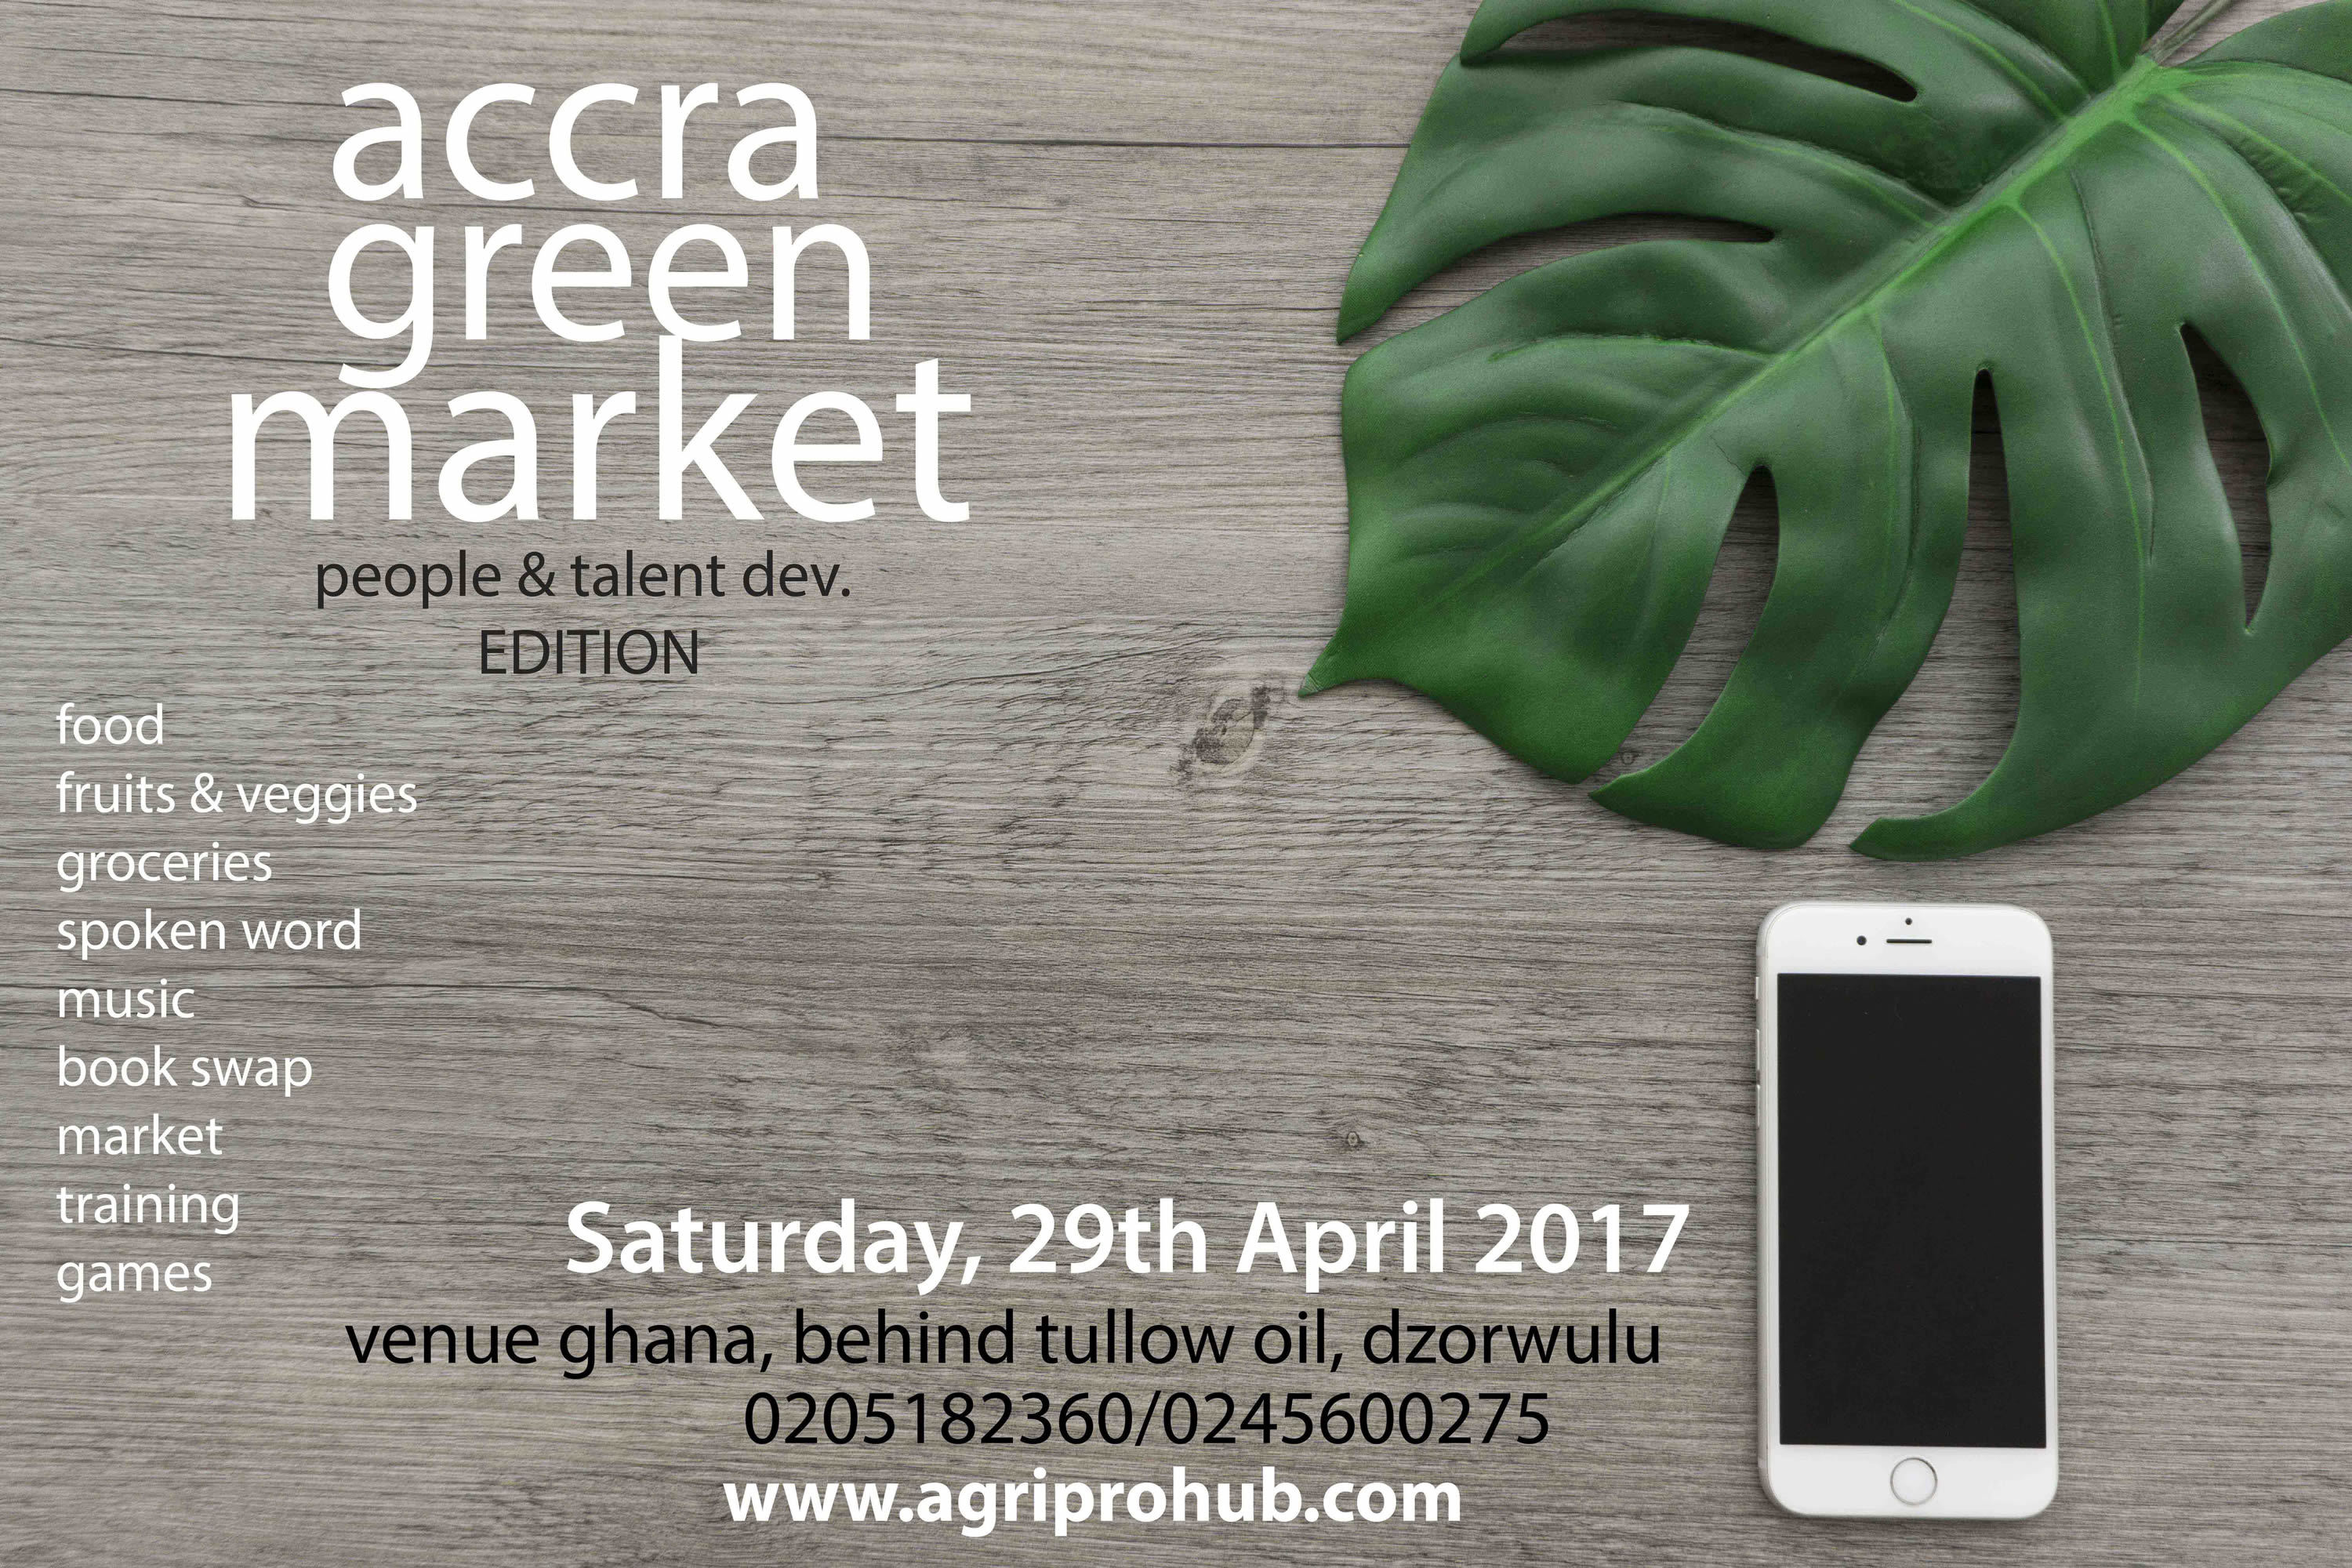 Accra Green Market April 29